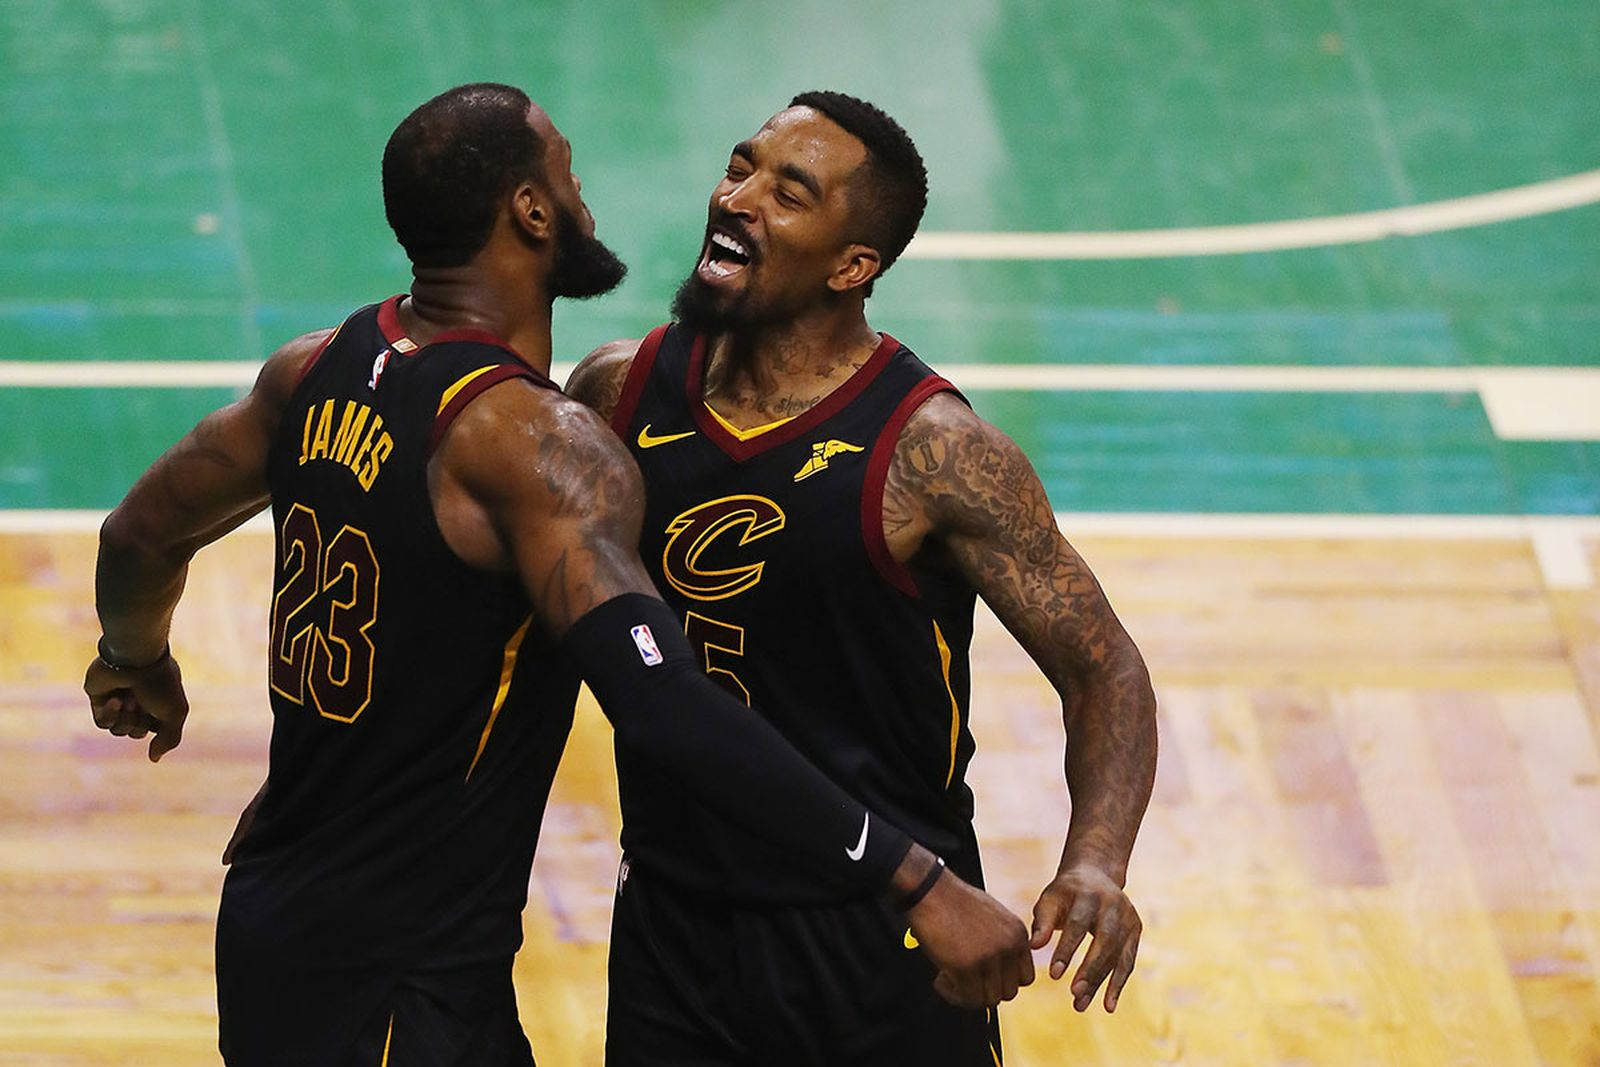 LeBron James #23 of the Cleveland Cavaliers celebrates with JR Smith #5 in the second half against the Boston Celtics during Game Seven of the 2018 NBA Eastern Conference Finals at TD Garden on May 27, 2018 in Boston